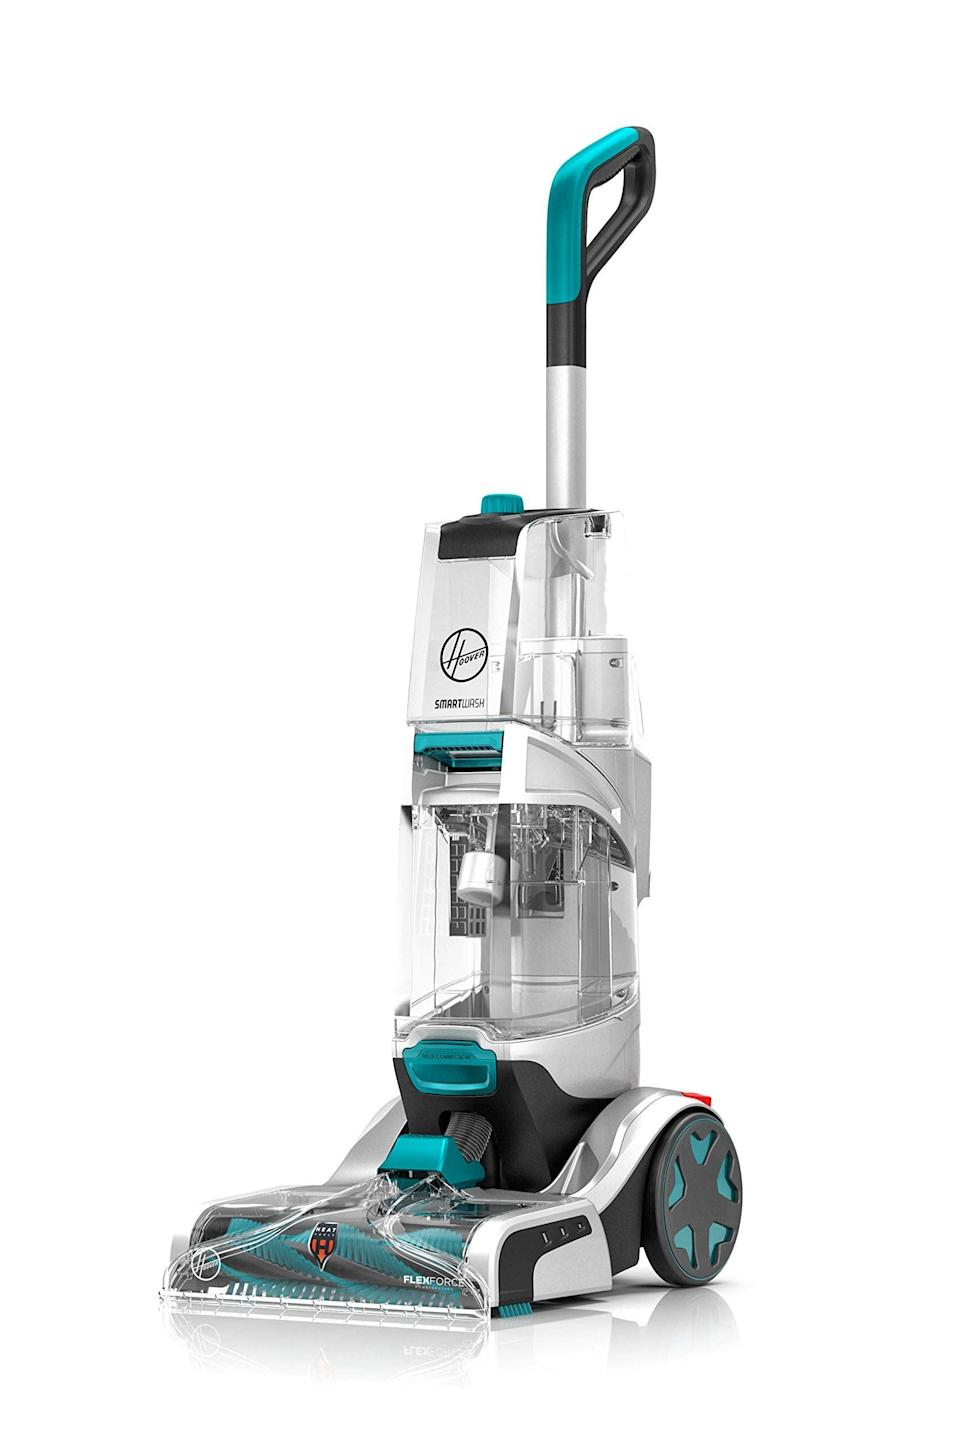 """<br><br><strong>Hoover</strong> Smartwash Automatic Carpet Cleaner Machine, $, available at <a href=""""https://amzn.to/3zrqKiX"""" rel=""""nofollow noopener"""" target=""""_blank"""" data-ylk=""""slk:Amazon"""" class=""""link rapid-noclick-resp"""">Amazon</a>"""